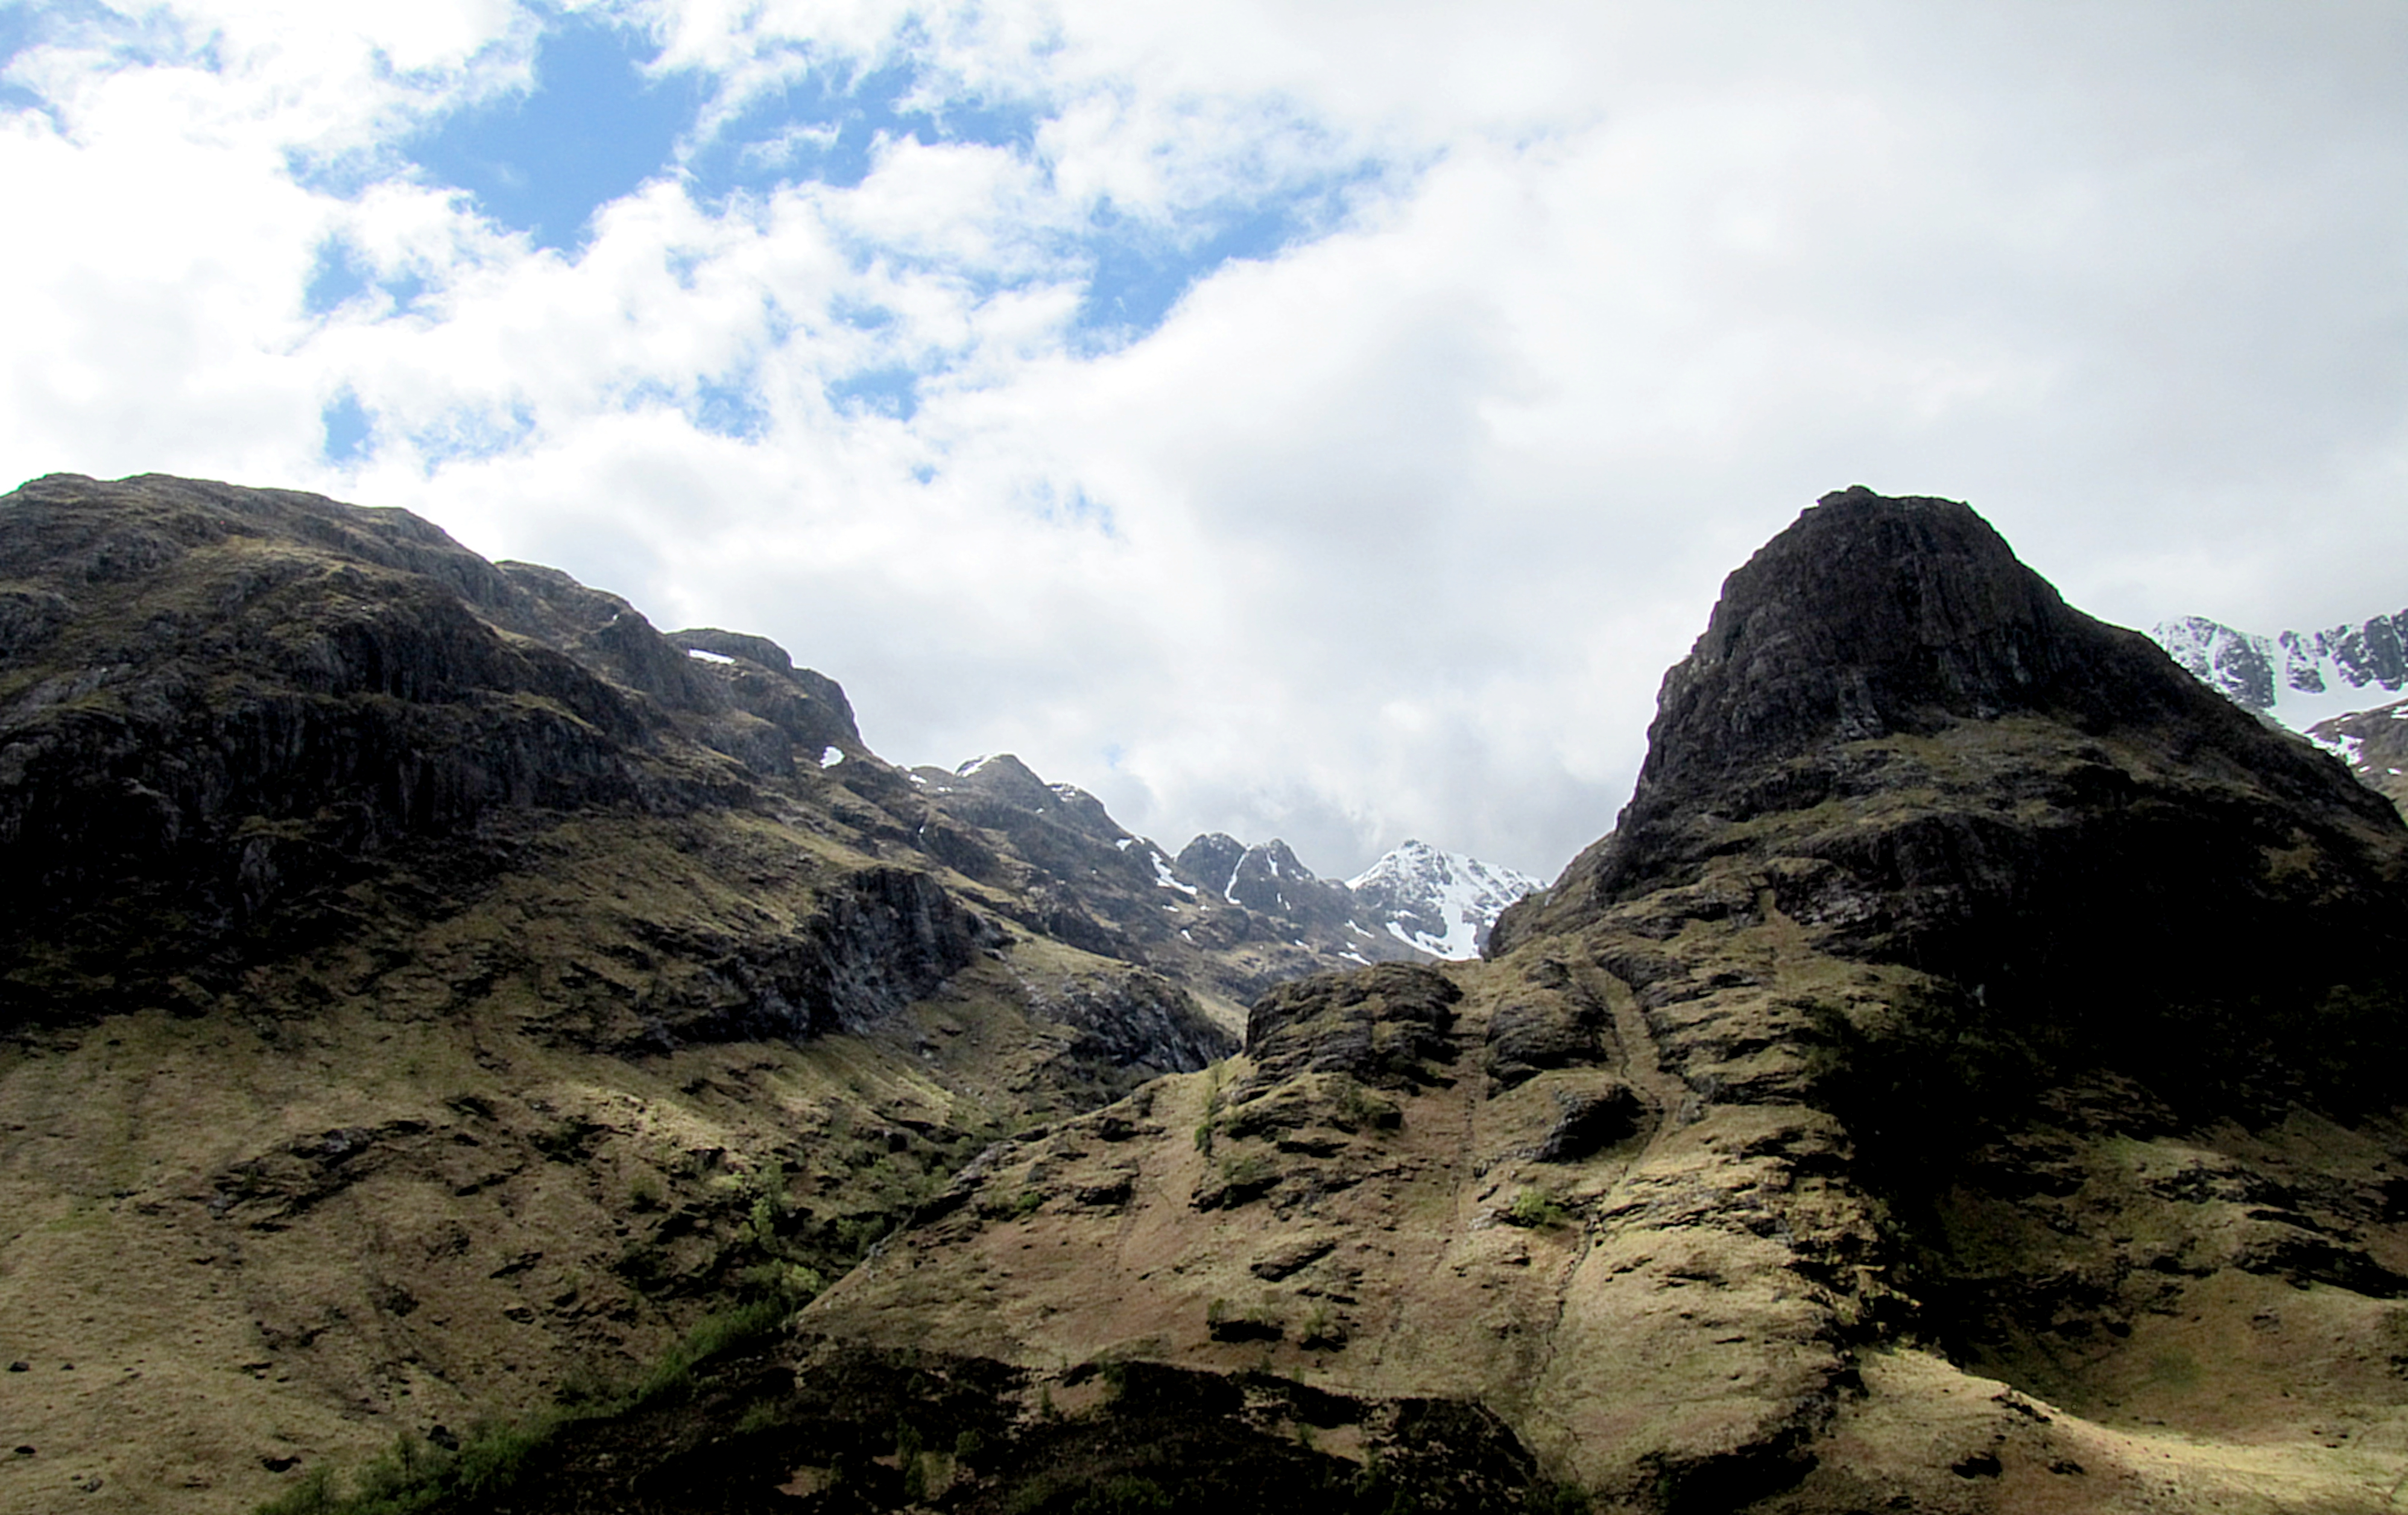 These are two of the Three Sisters of Glencoe. I was trying to find an angle to get all three when I took my faceplant.